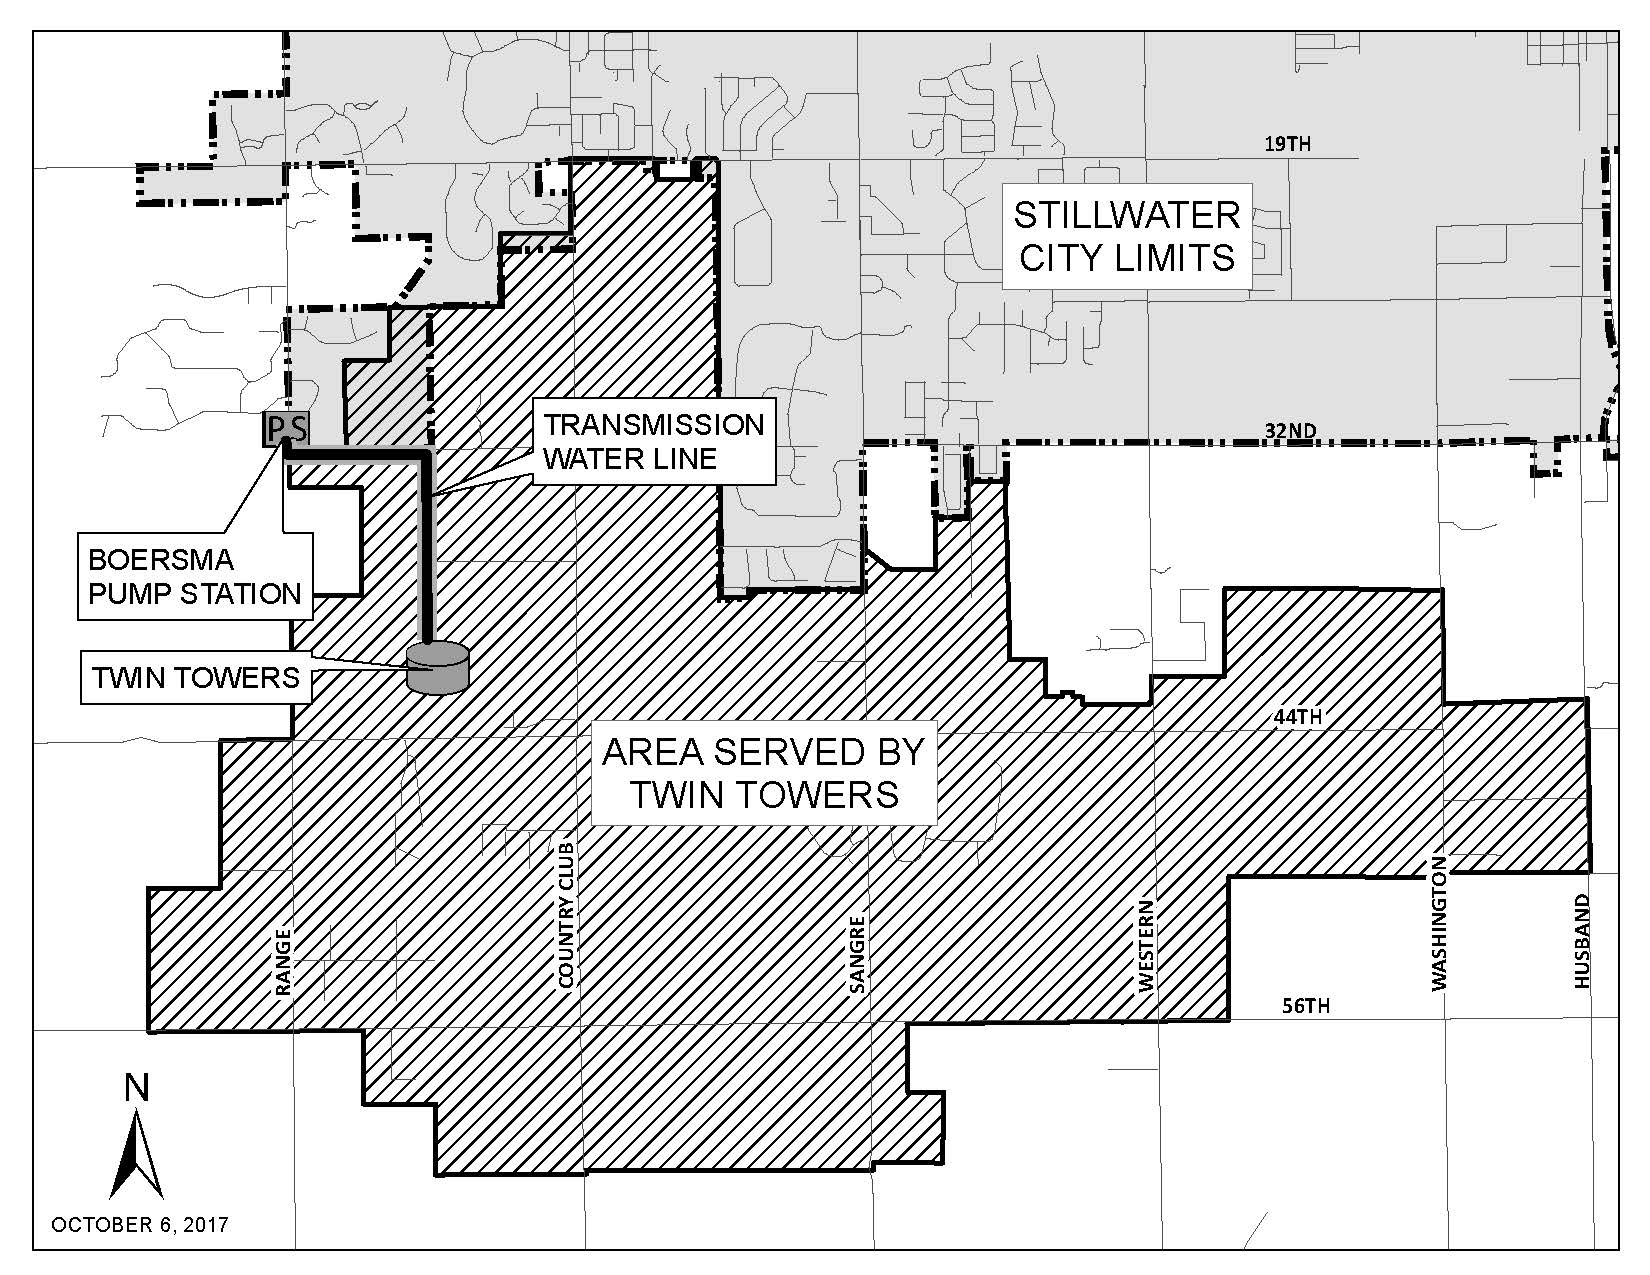 Map of Twin Towers zone, southwest of City Limits